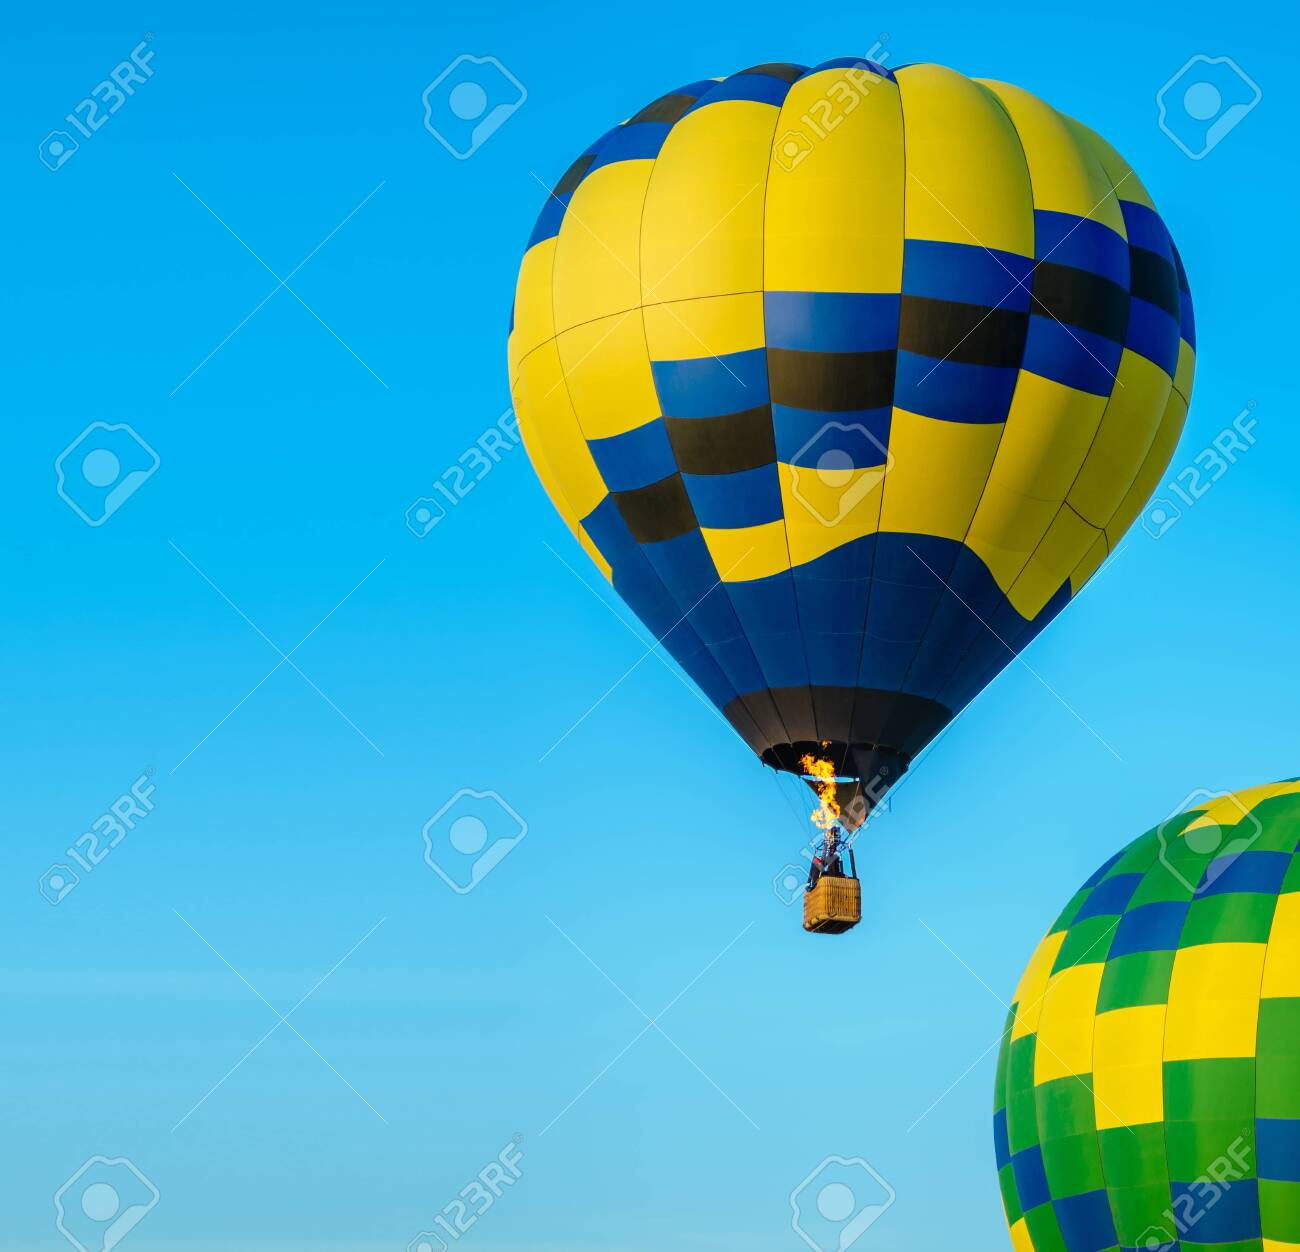 Colorful hot air balloon taking off with blue sky and copy space - 130888107